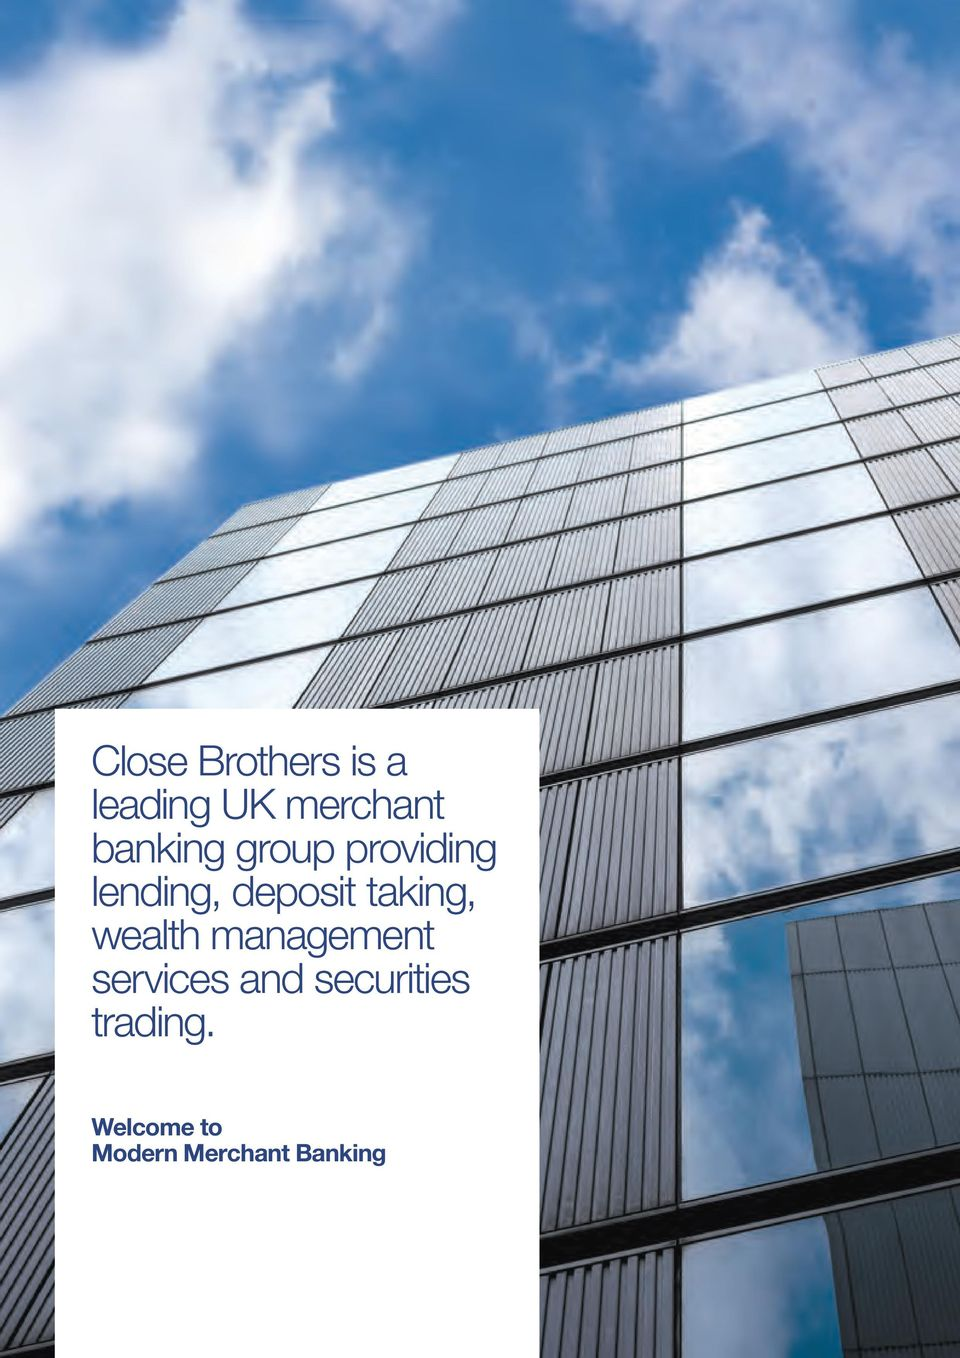 taking, wealth management services and